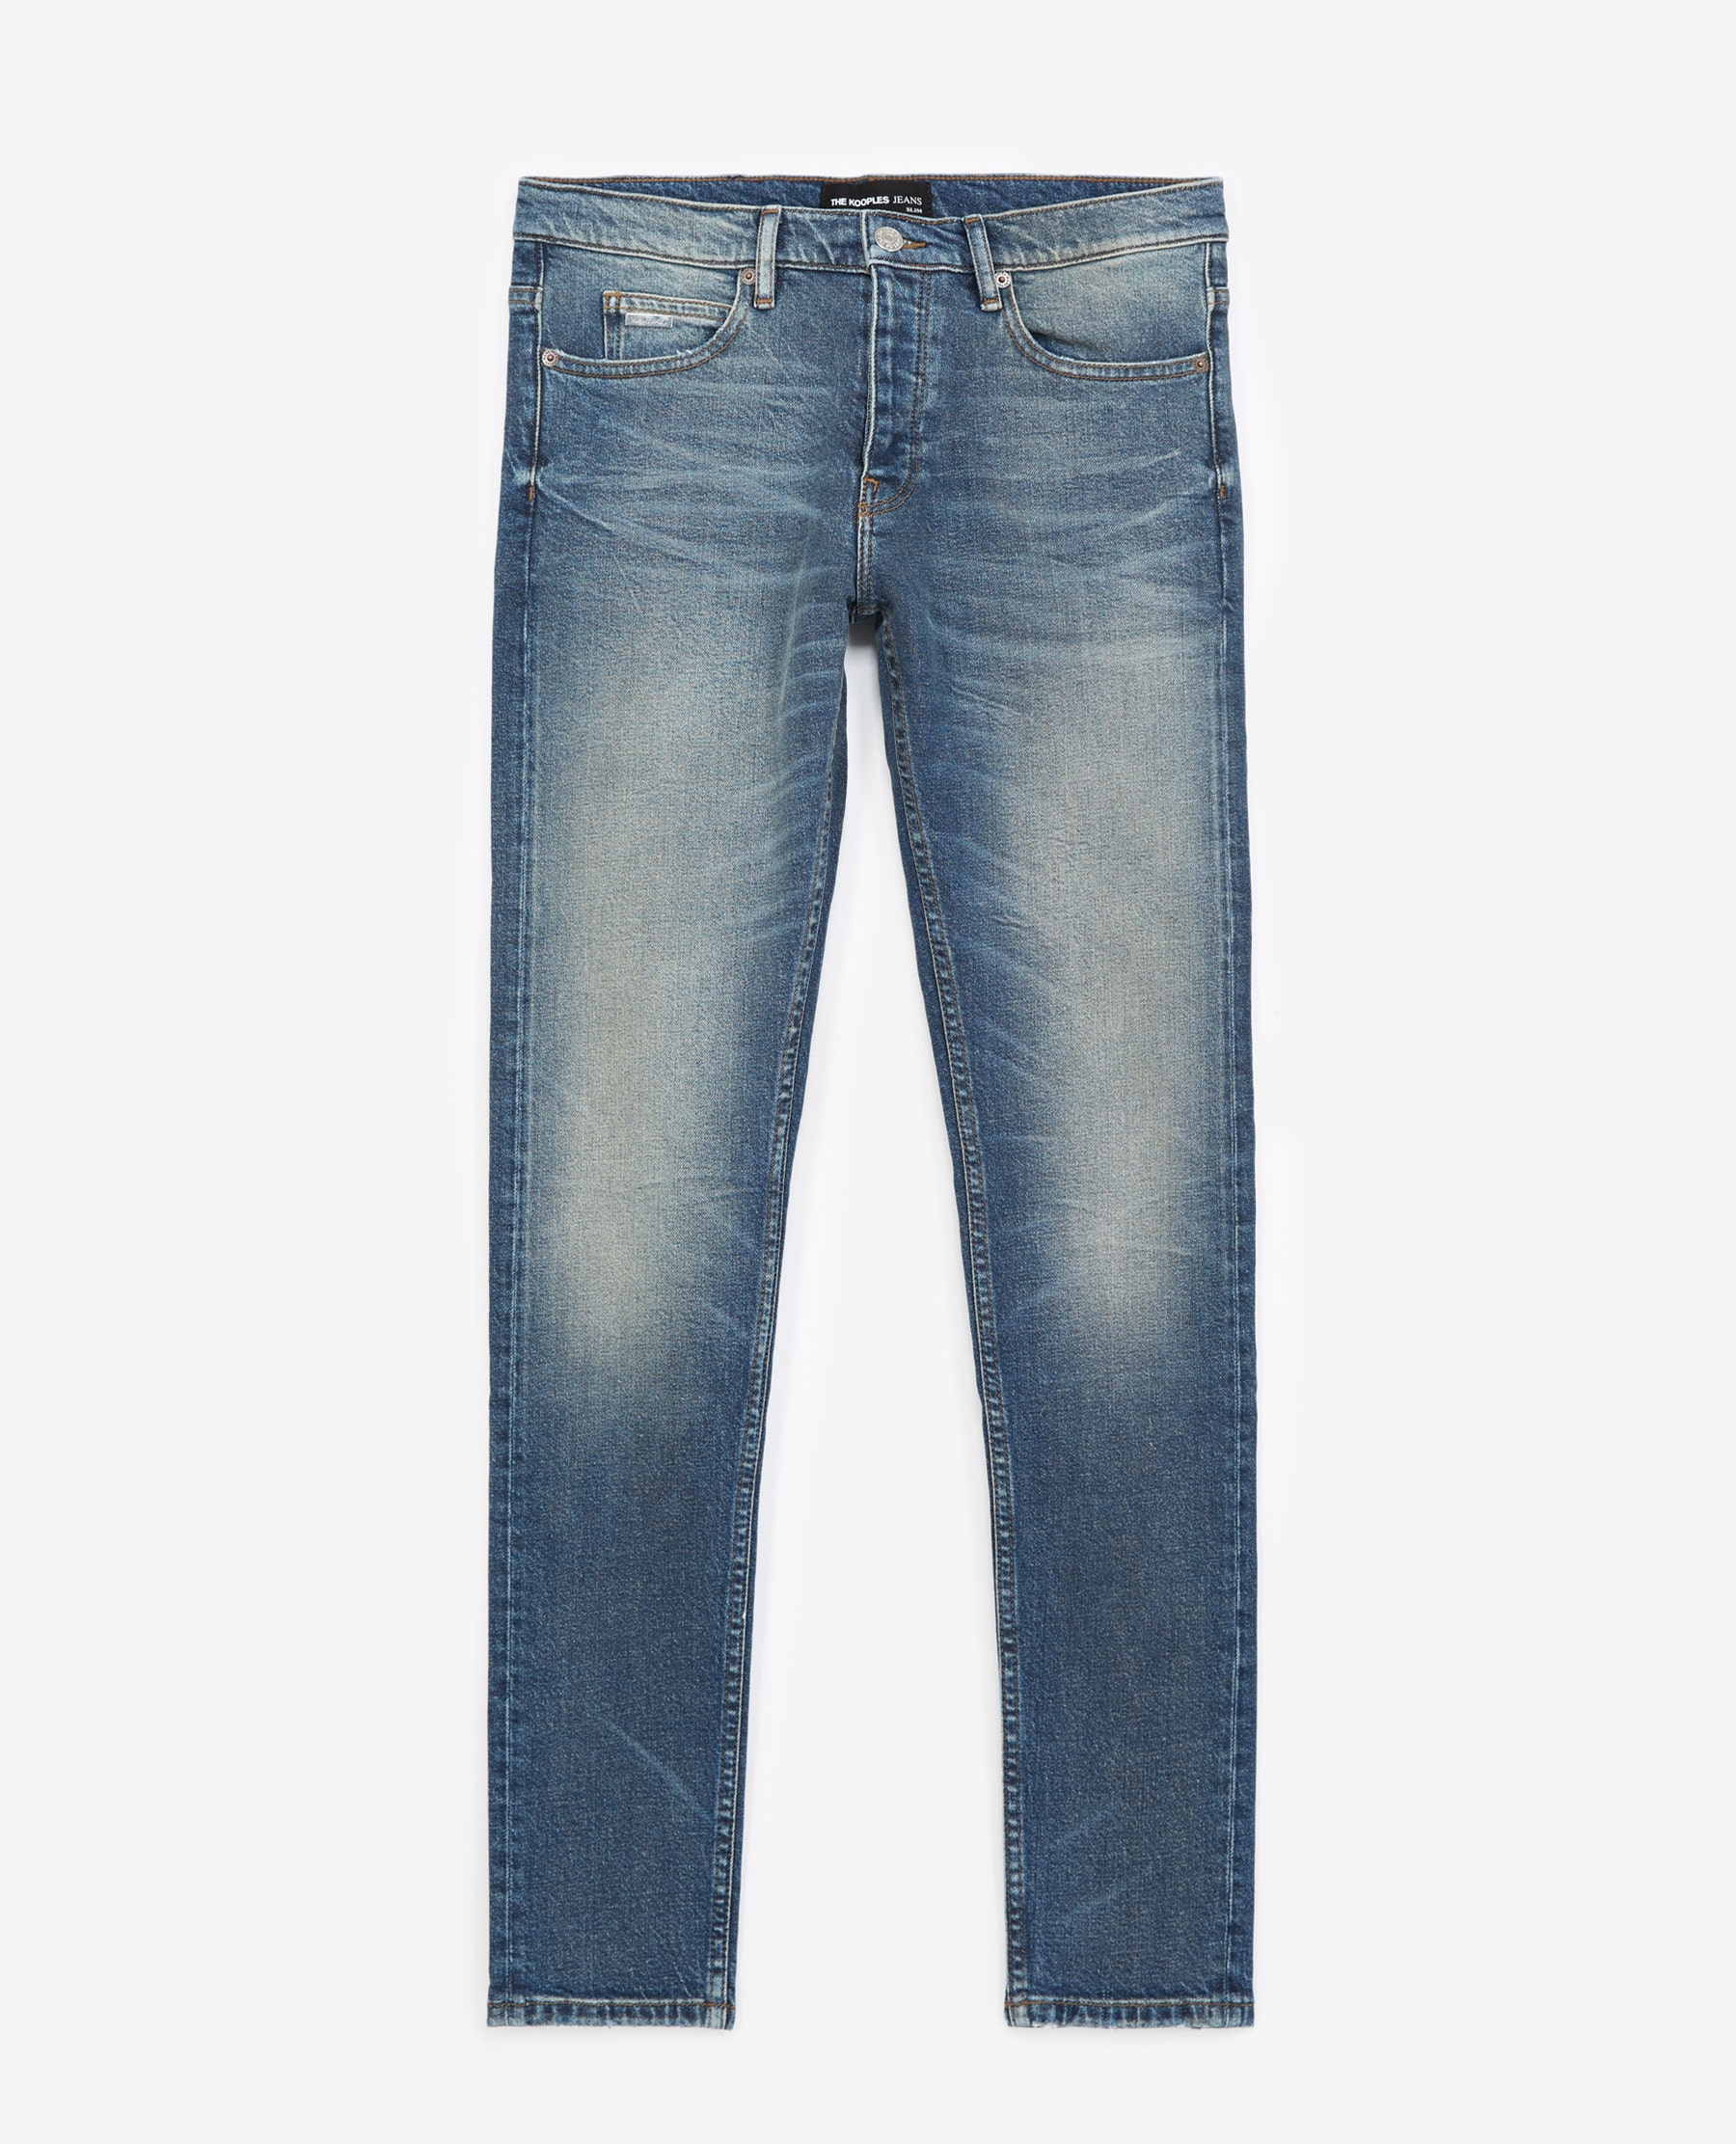 Jean slim bleu délavé coton stretch - The Kooples - Modalova